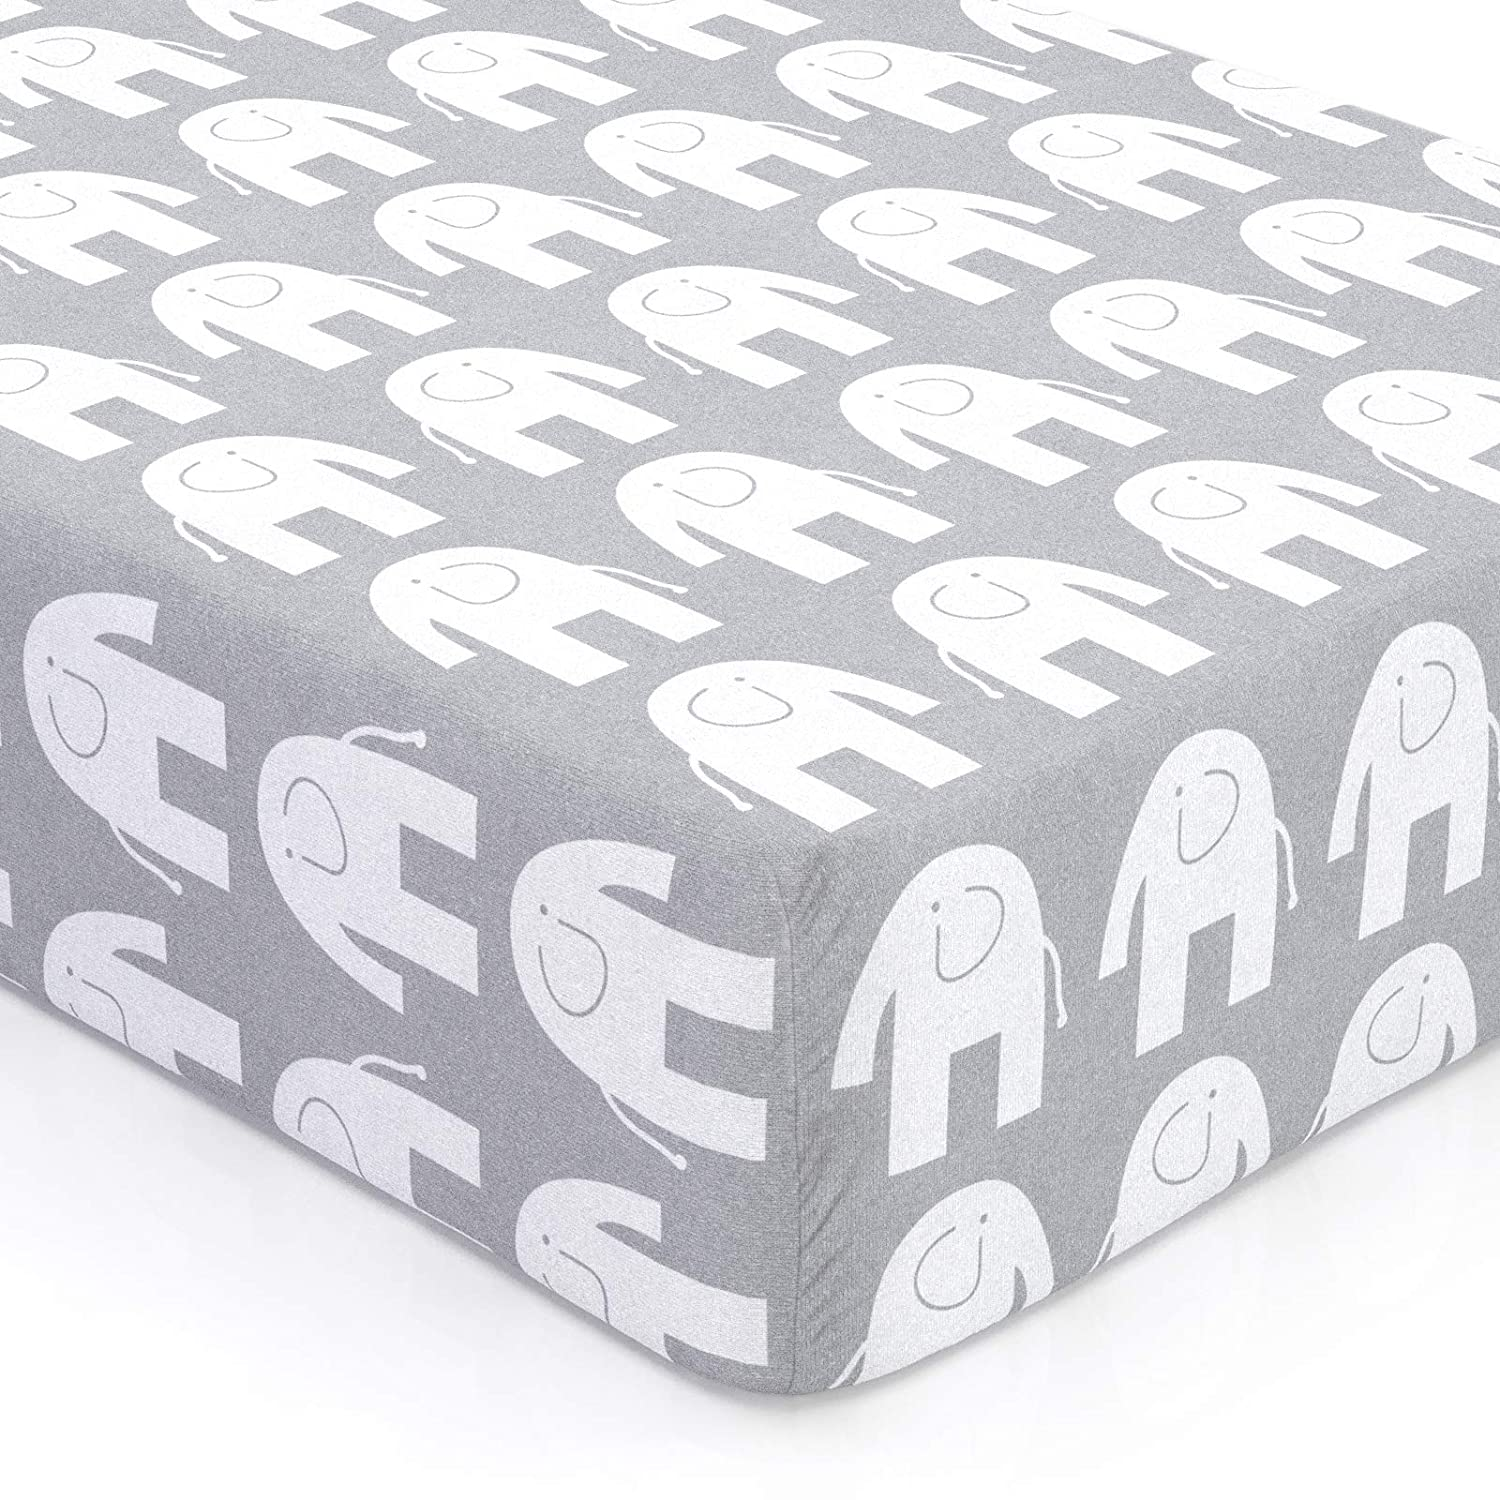 Crib Sheet /& More MADE TO ORDER Mint Elephants  Organic Minky,or Cotton:Fitted Crib SheetChanging Pad CoverMinky BlanketCrib Skirt+More